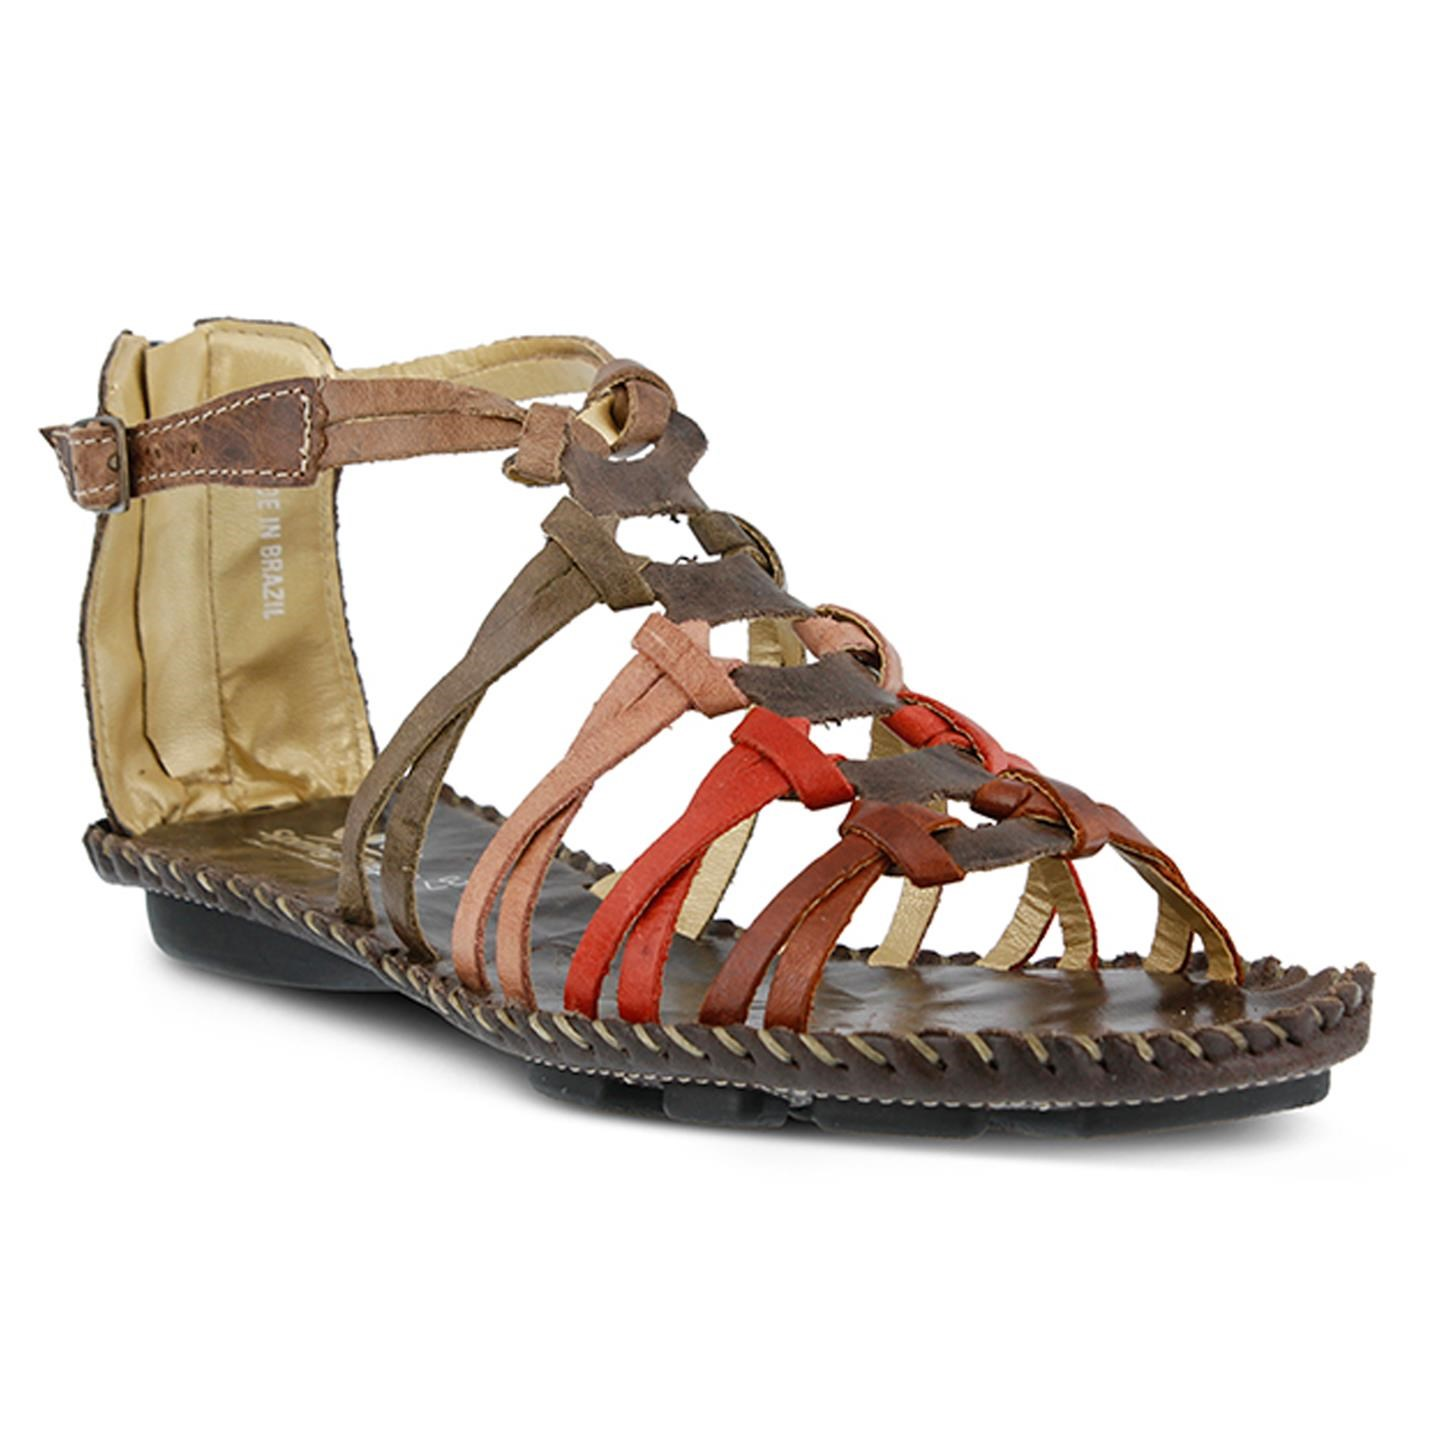 Sheldony By Spring Step Brown Womens Leather Sandal 37 EU   7 US Women by Spring Step